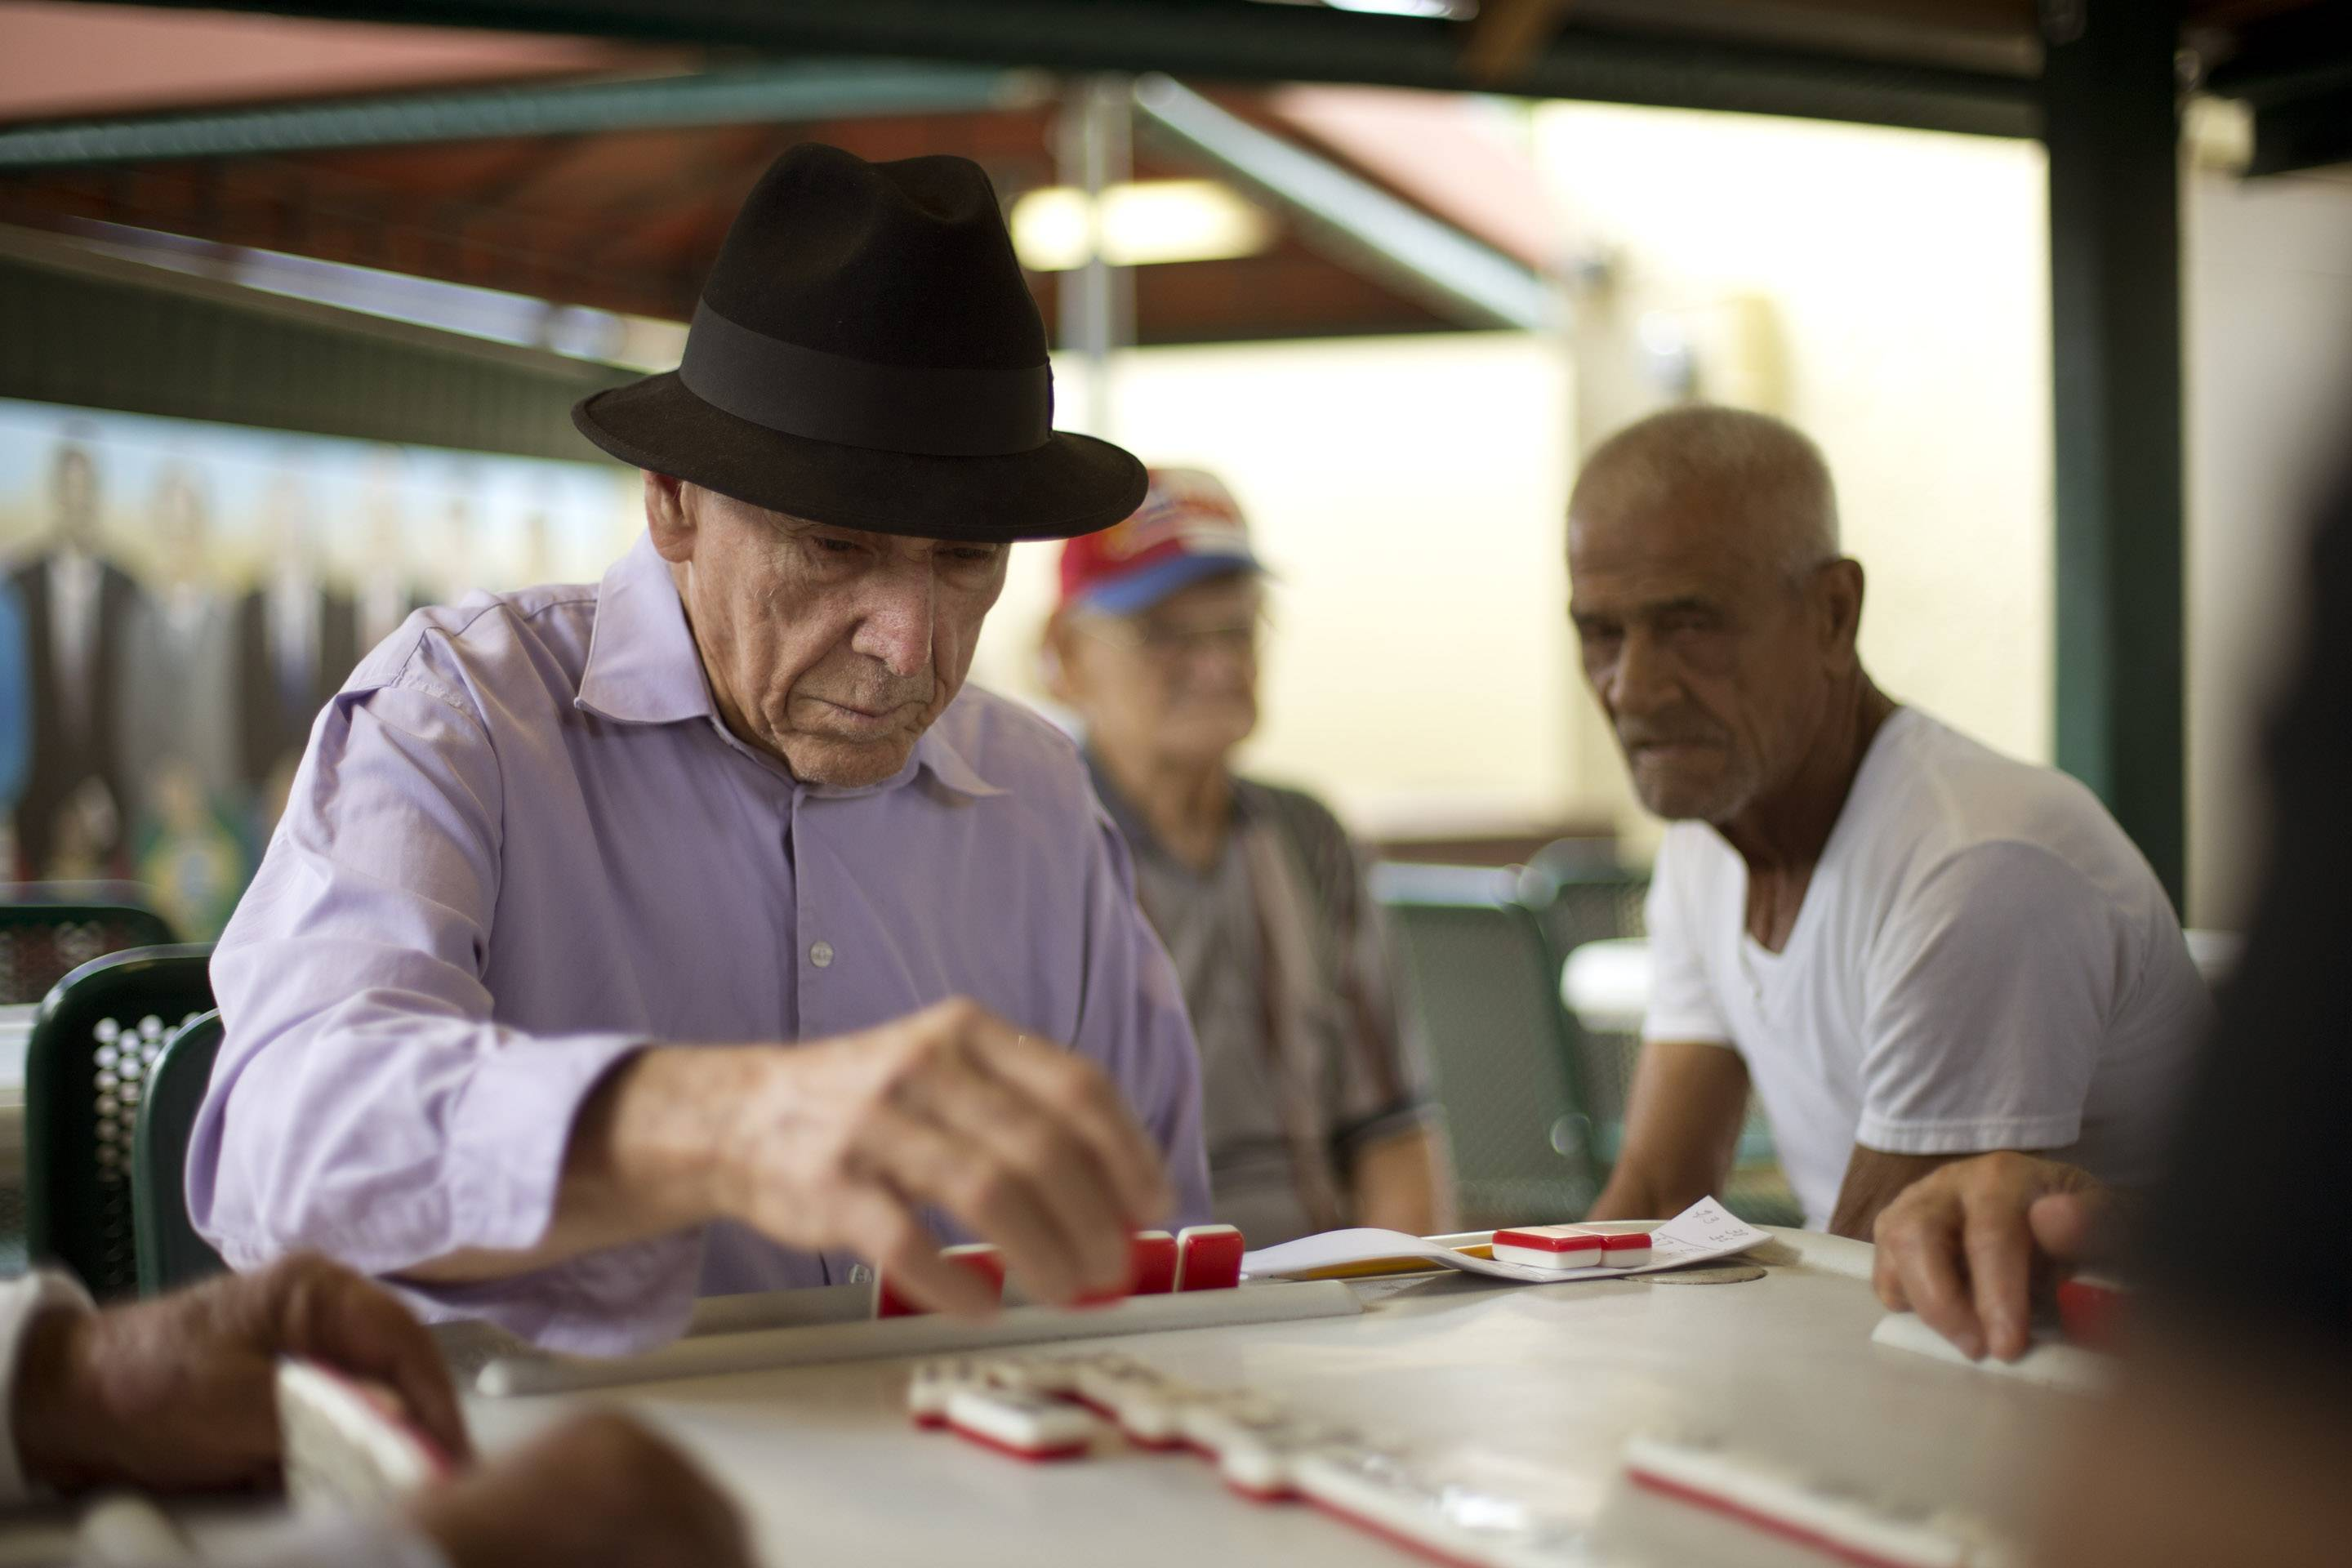 Men play dominoes on Calle Ocho (Eighth Street) in Miami's Little Havana.